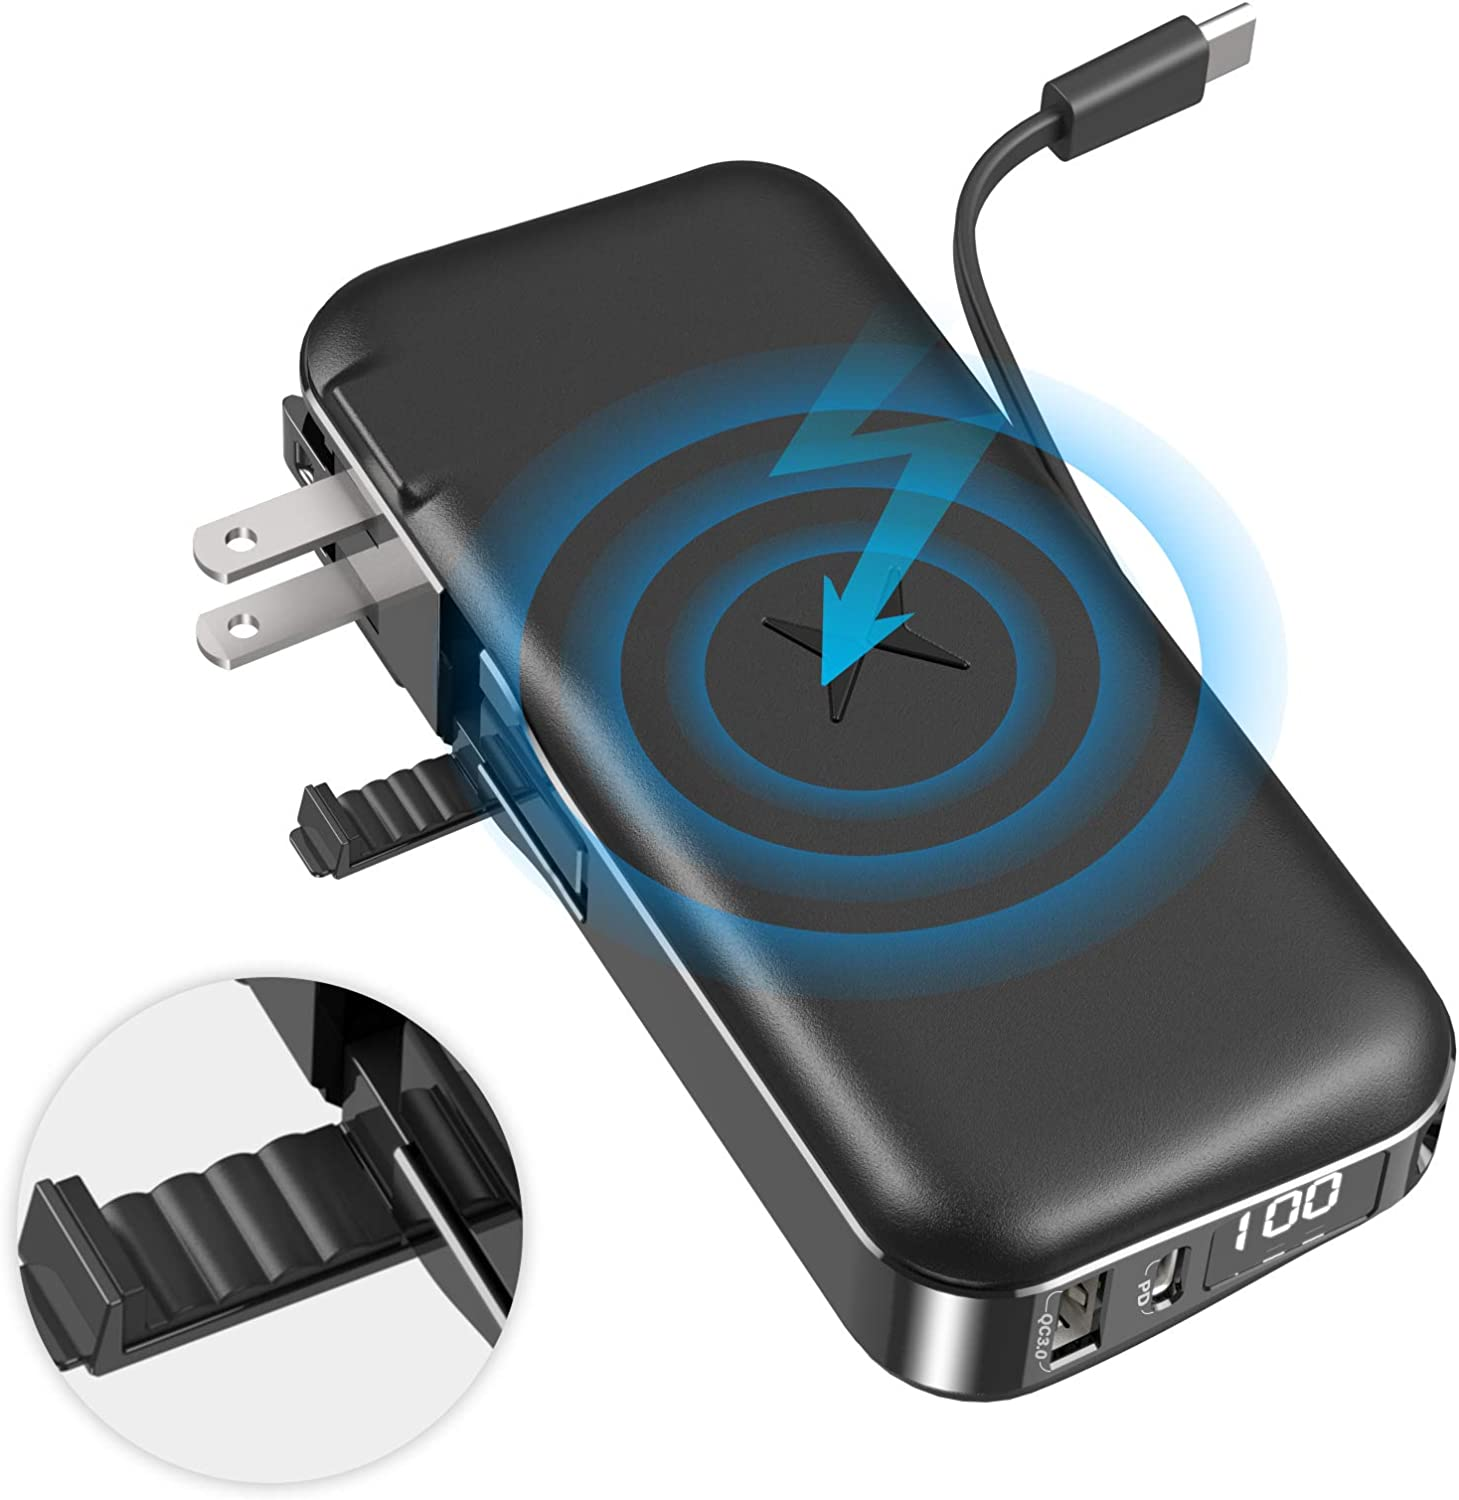 Dual Wireless Charger & Power Bank for Phone, Laptop – Compact & Portable Fast Charging Battery Charger for iPhone, iPad, Samsung Galaxy – Car & Travel Charging for Android & Apple